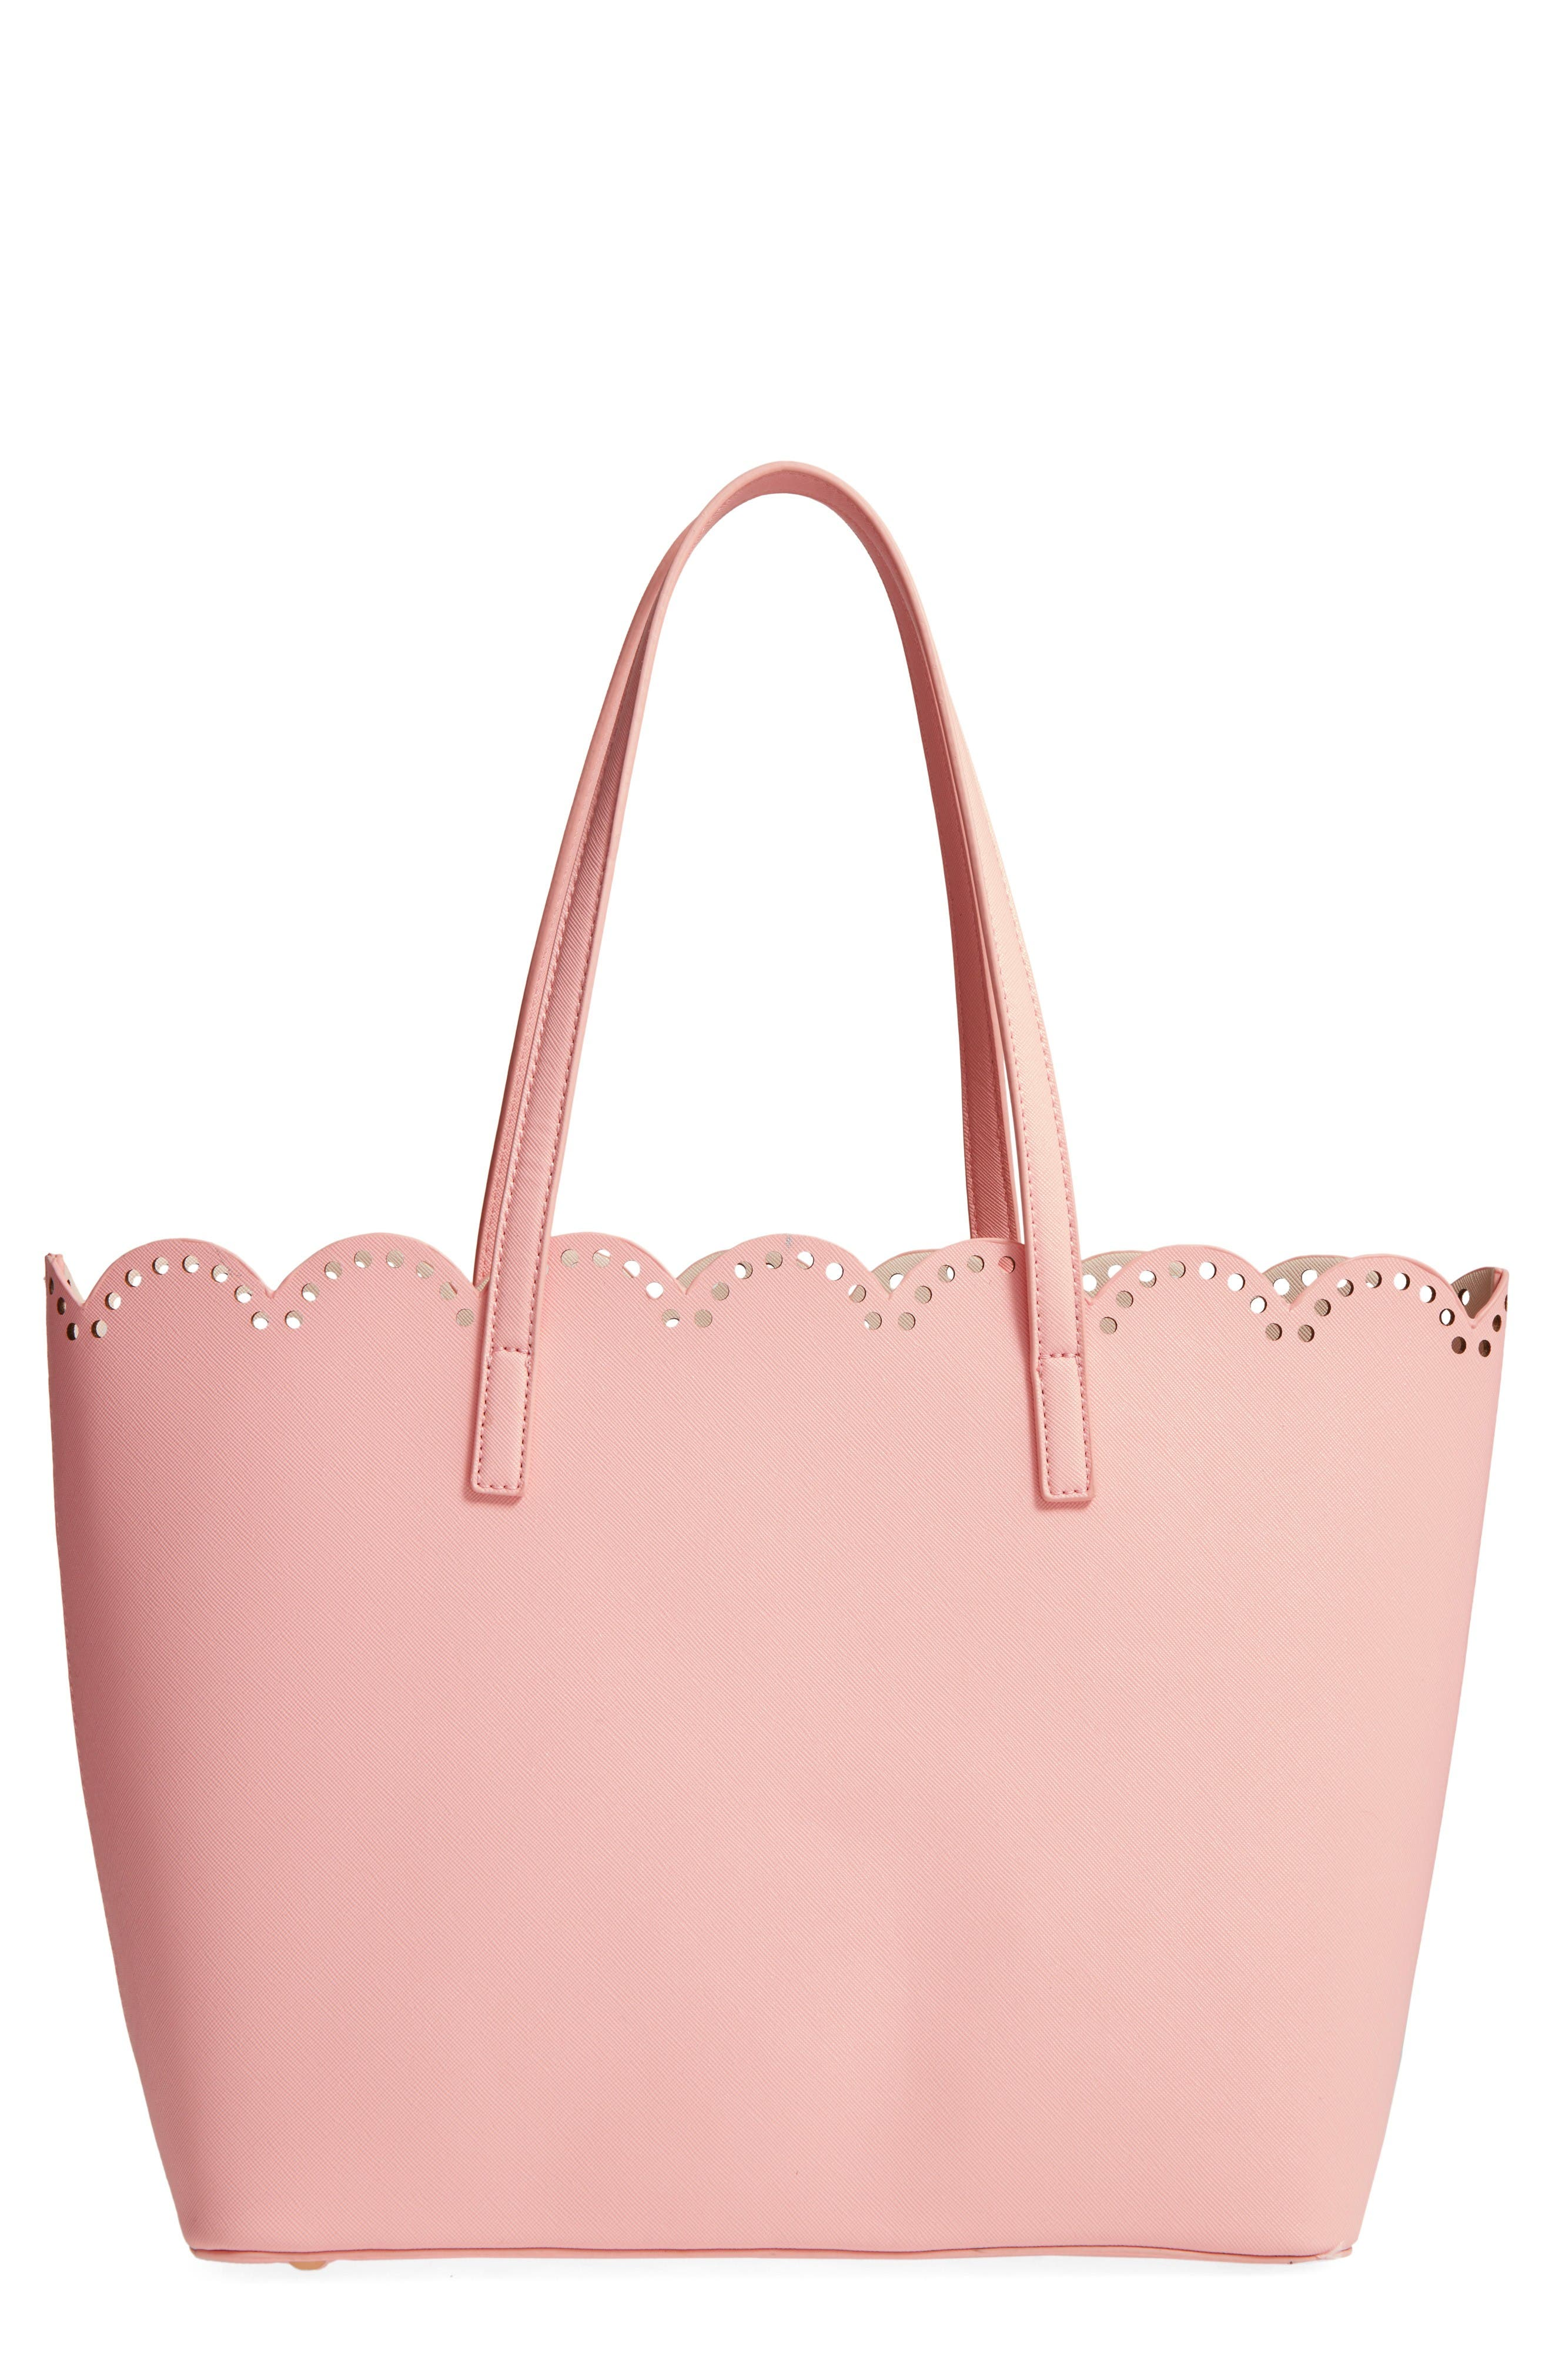 Main Image - BP. Scalloped Faux Leather Tote